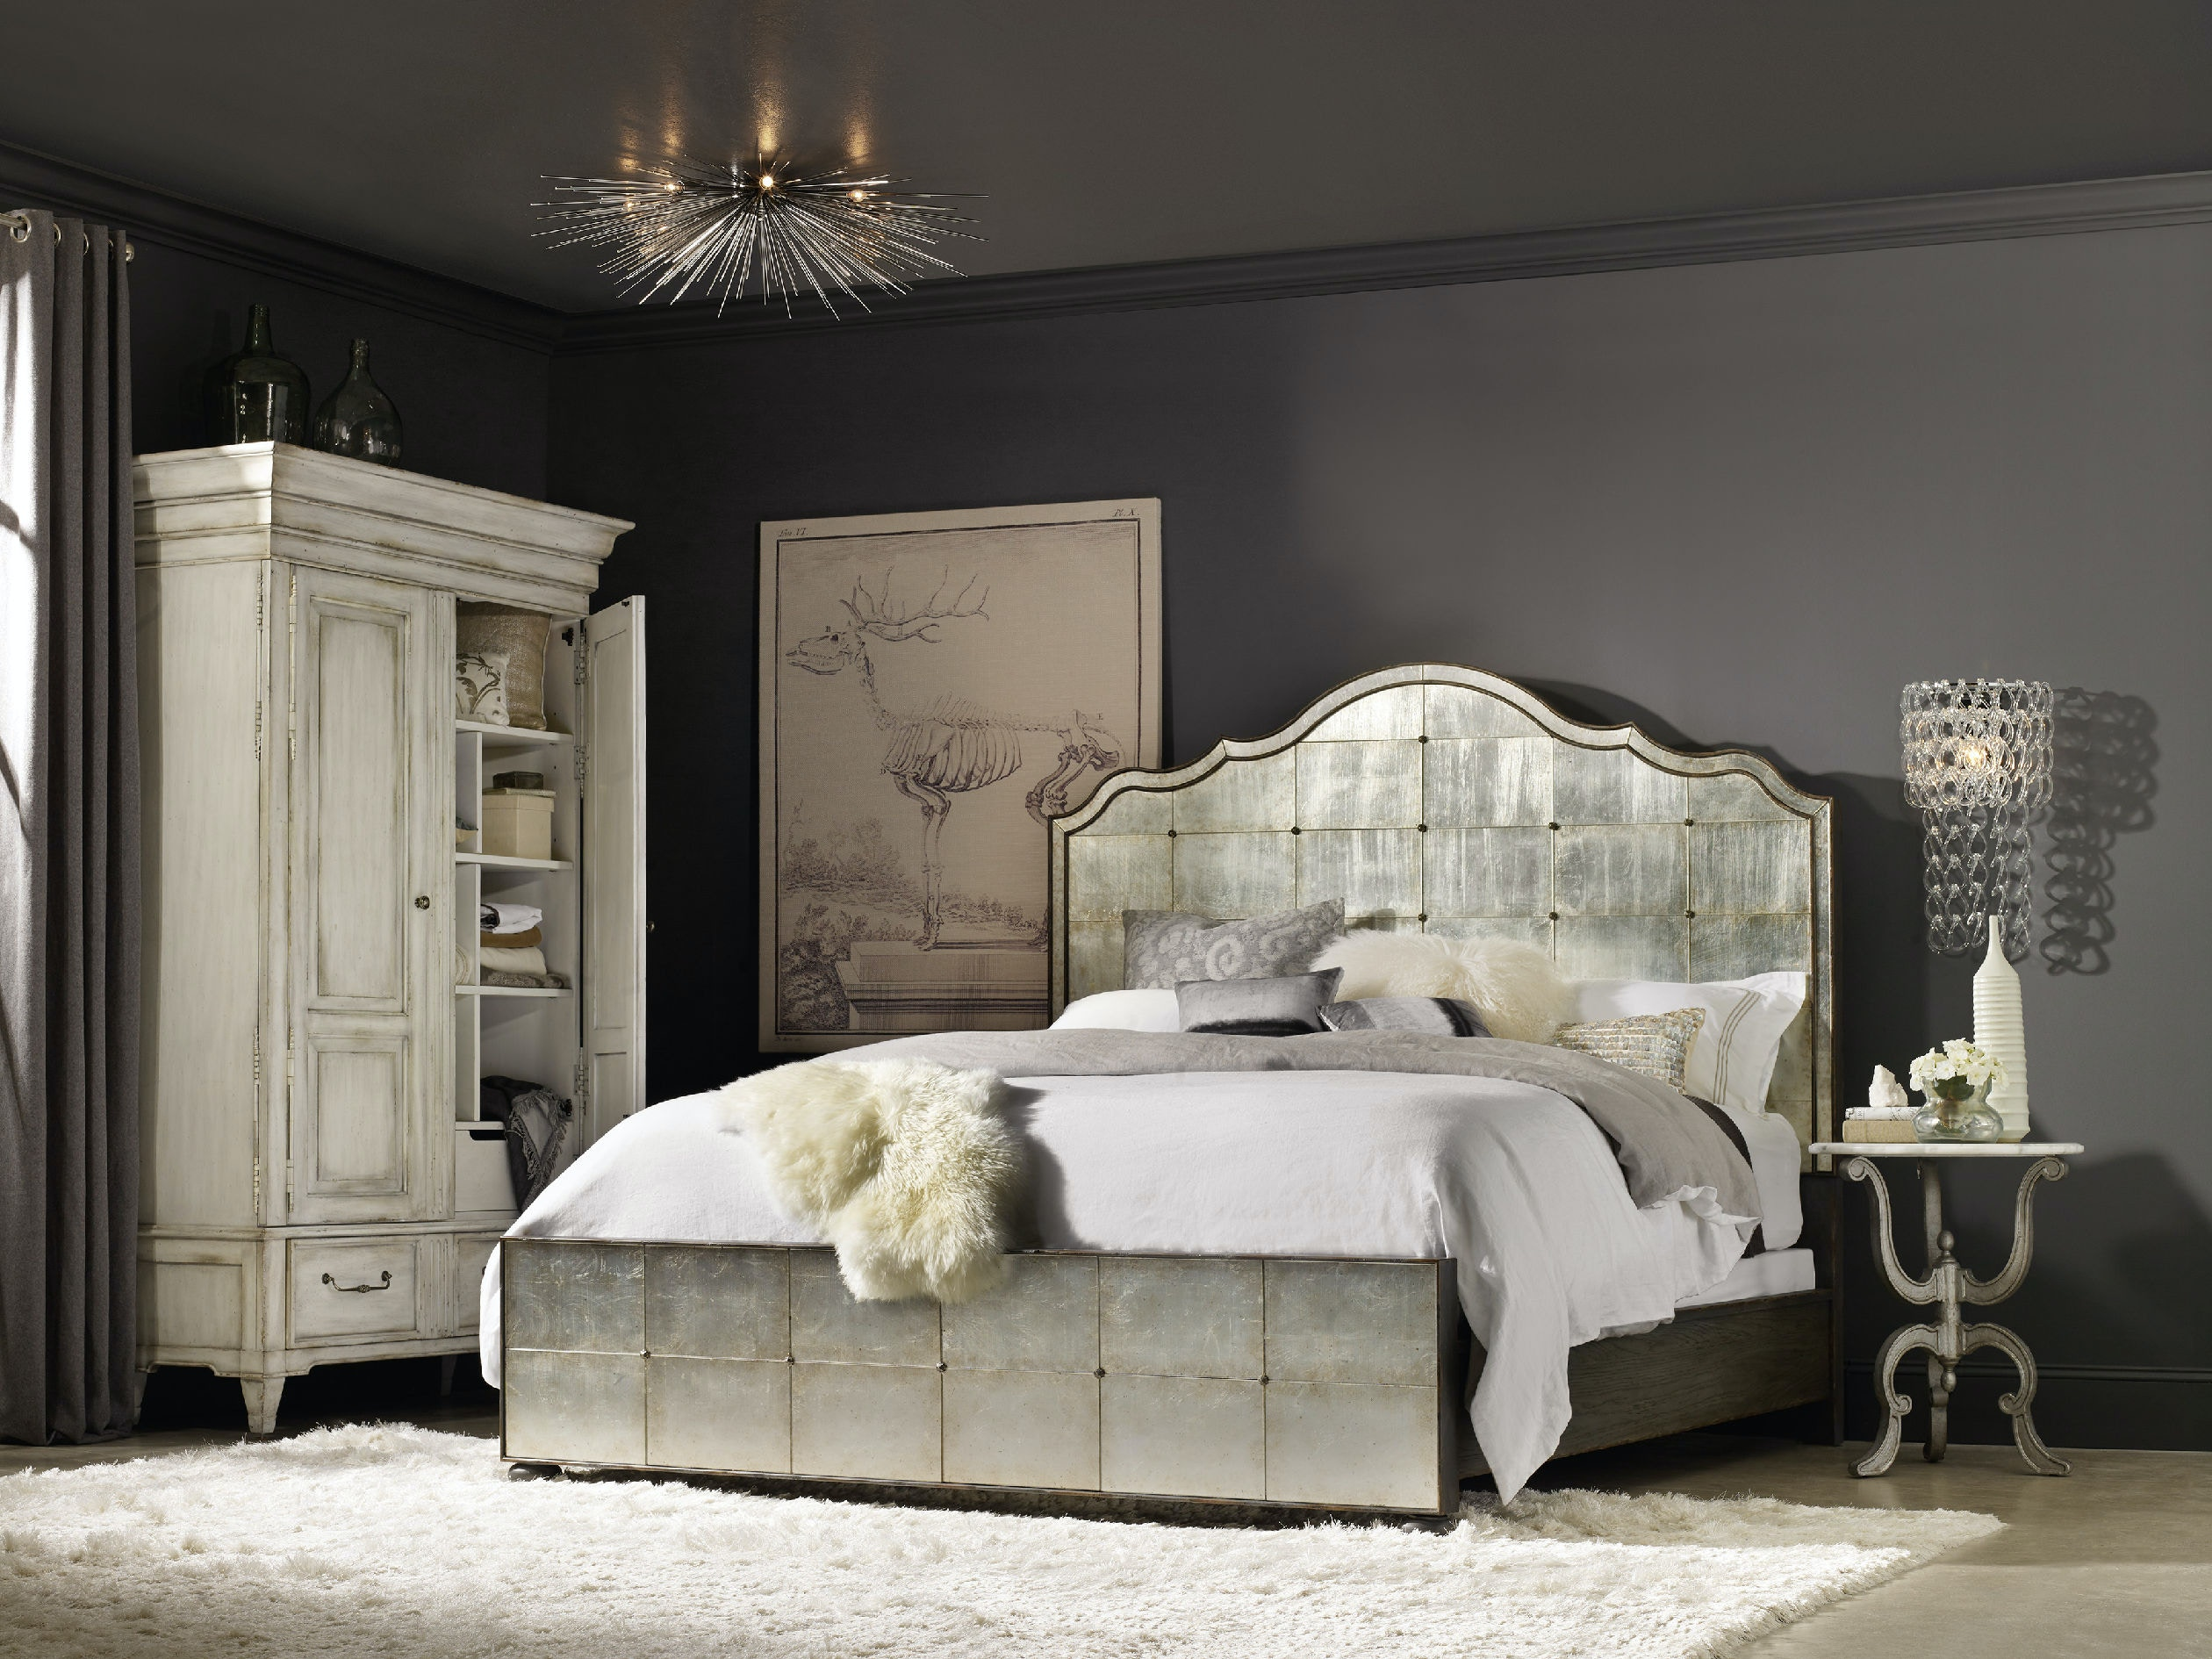 Superbe Hooker Furniture Arabella King Mirrored Panel Bed 1610 90166 EGLO